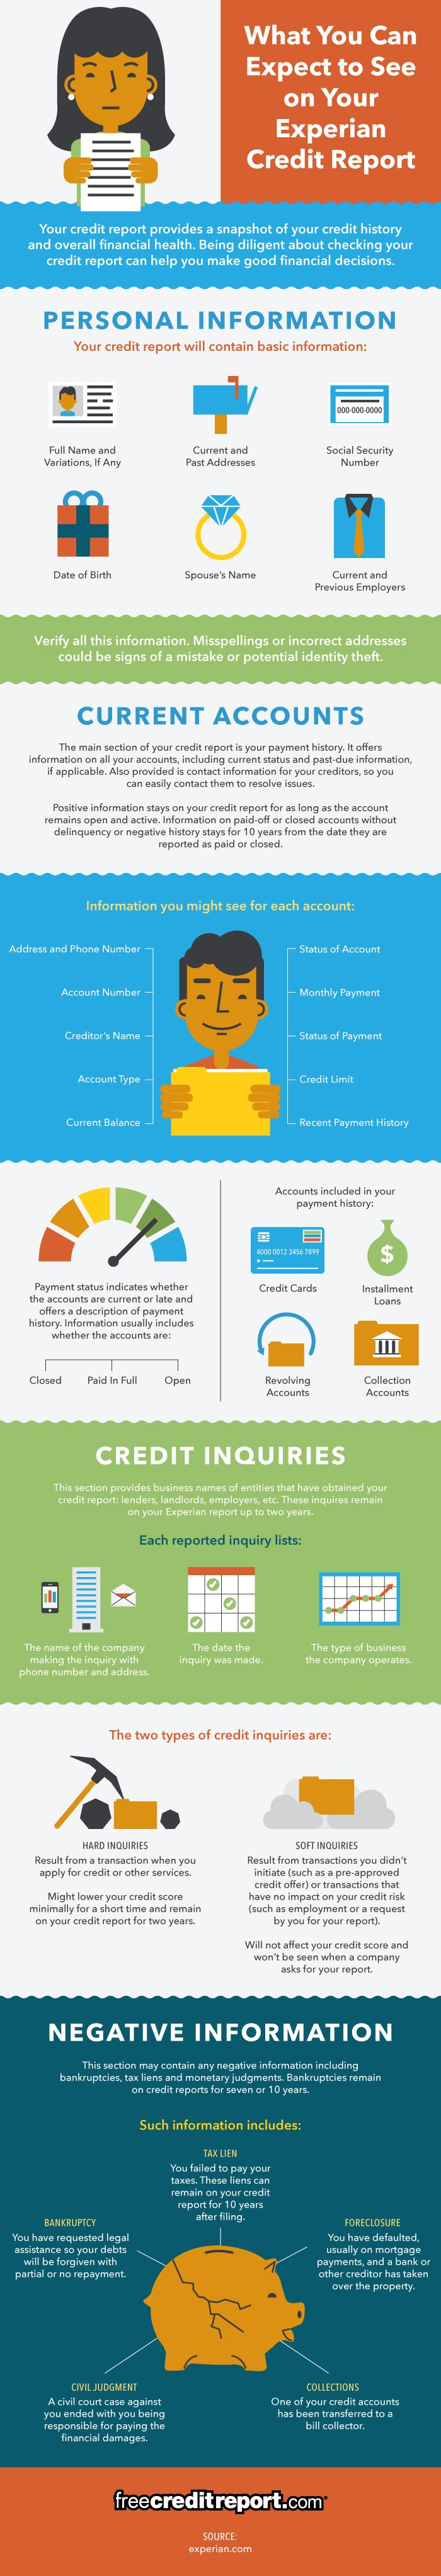 What You Can Expect to See on Your Experian Credit Report | Finance | Free Credit Report [Premium+ Infographic]